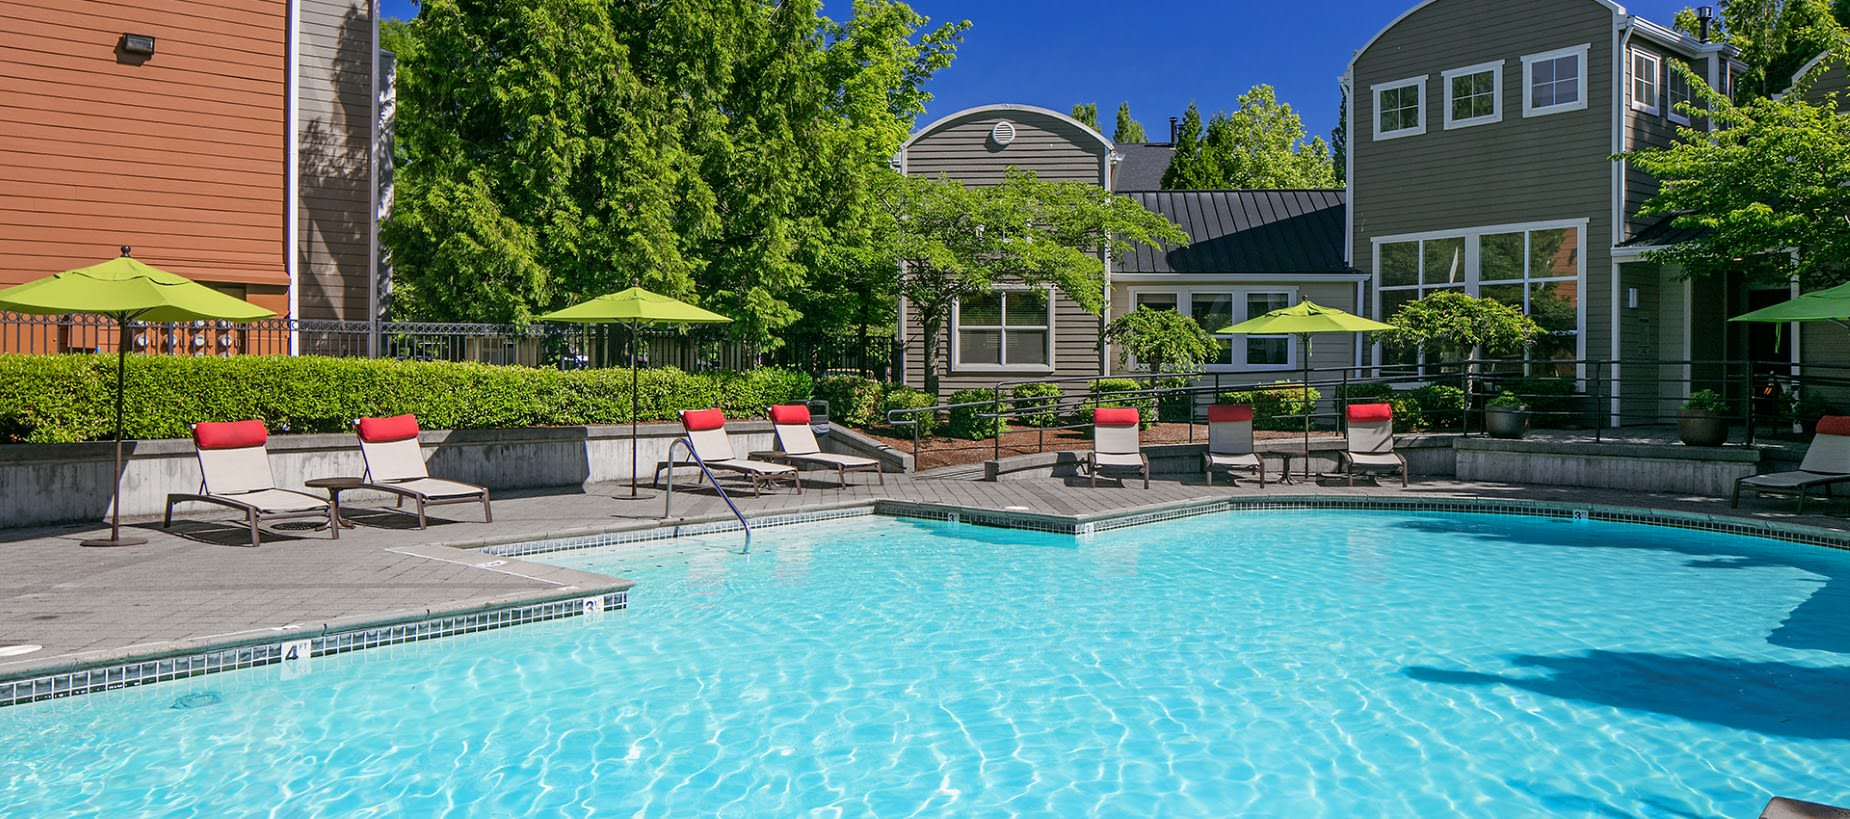 Pool at Center Pointe Apartment Homes in Beaverton, Oregon